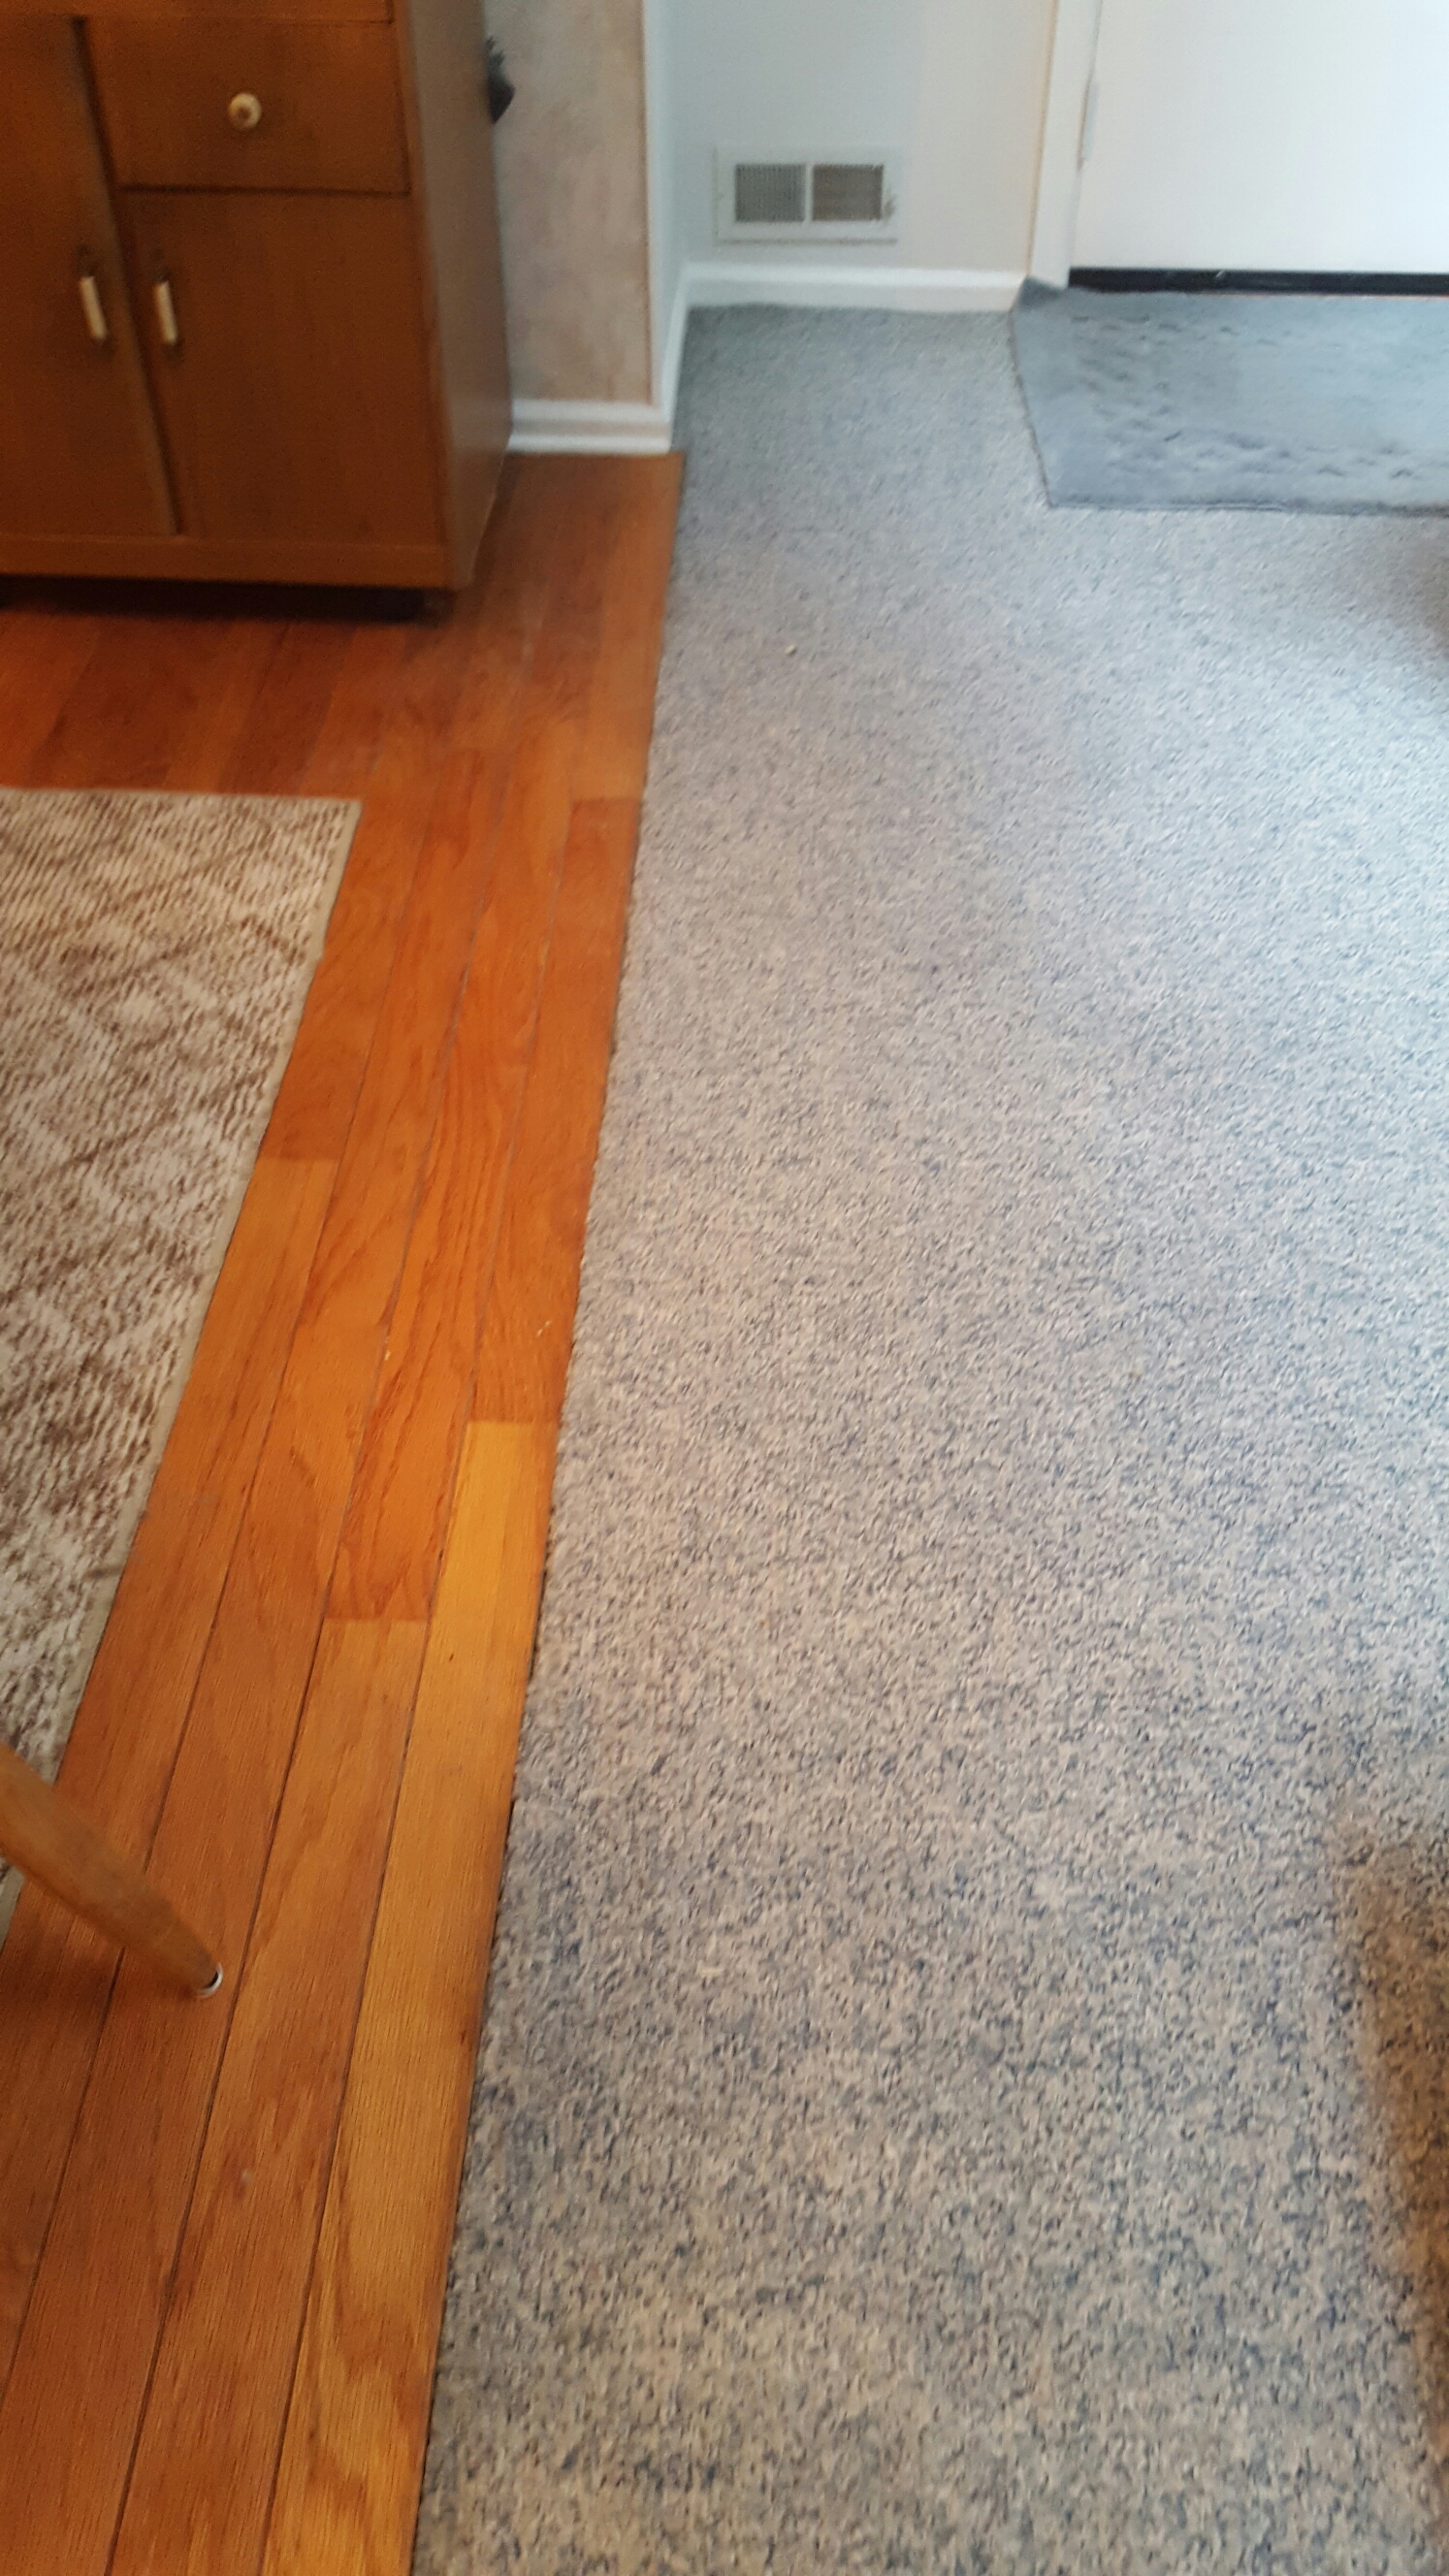 Repaired Amp Restretched Berber Carpeting On Concrete Floor